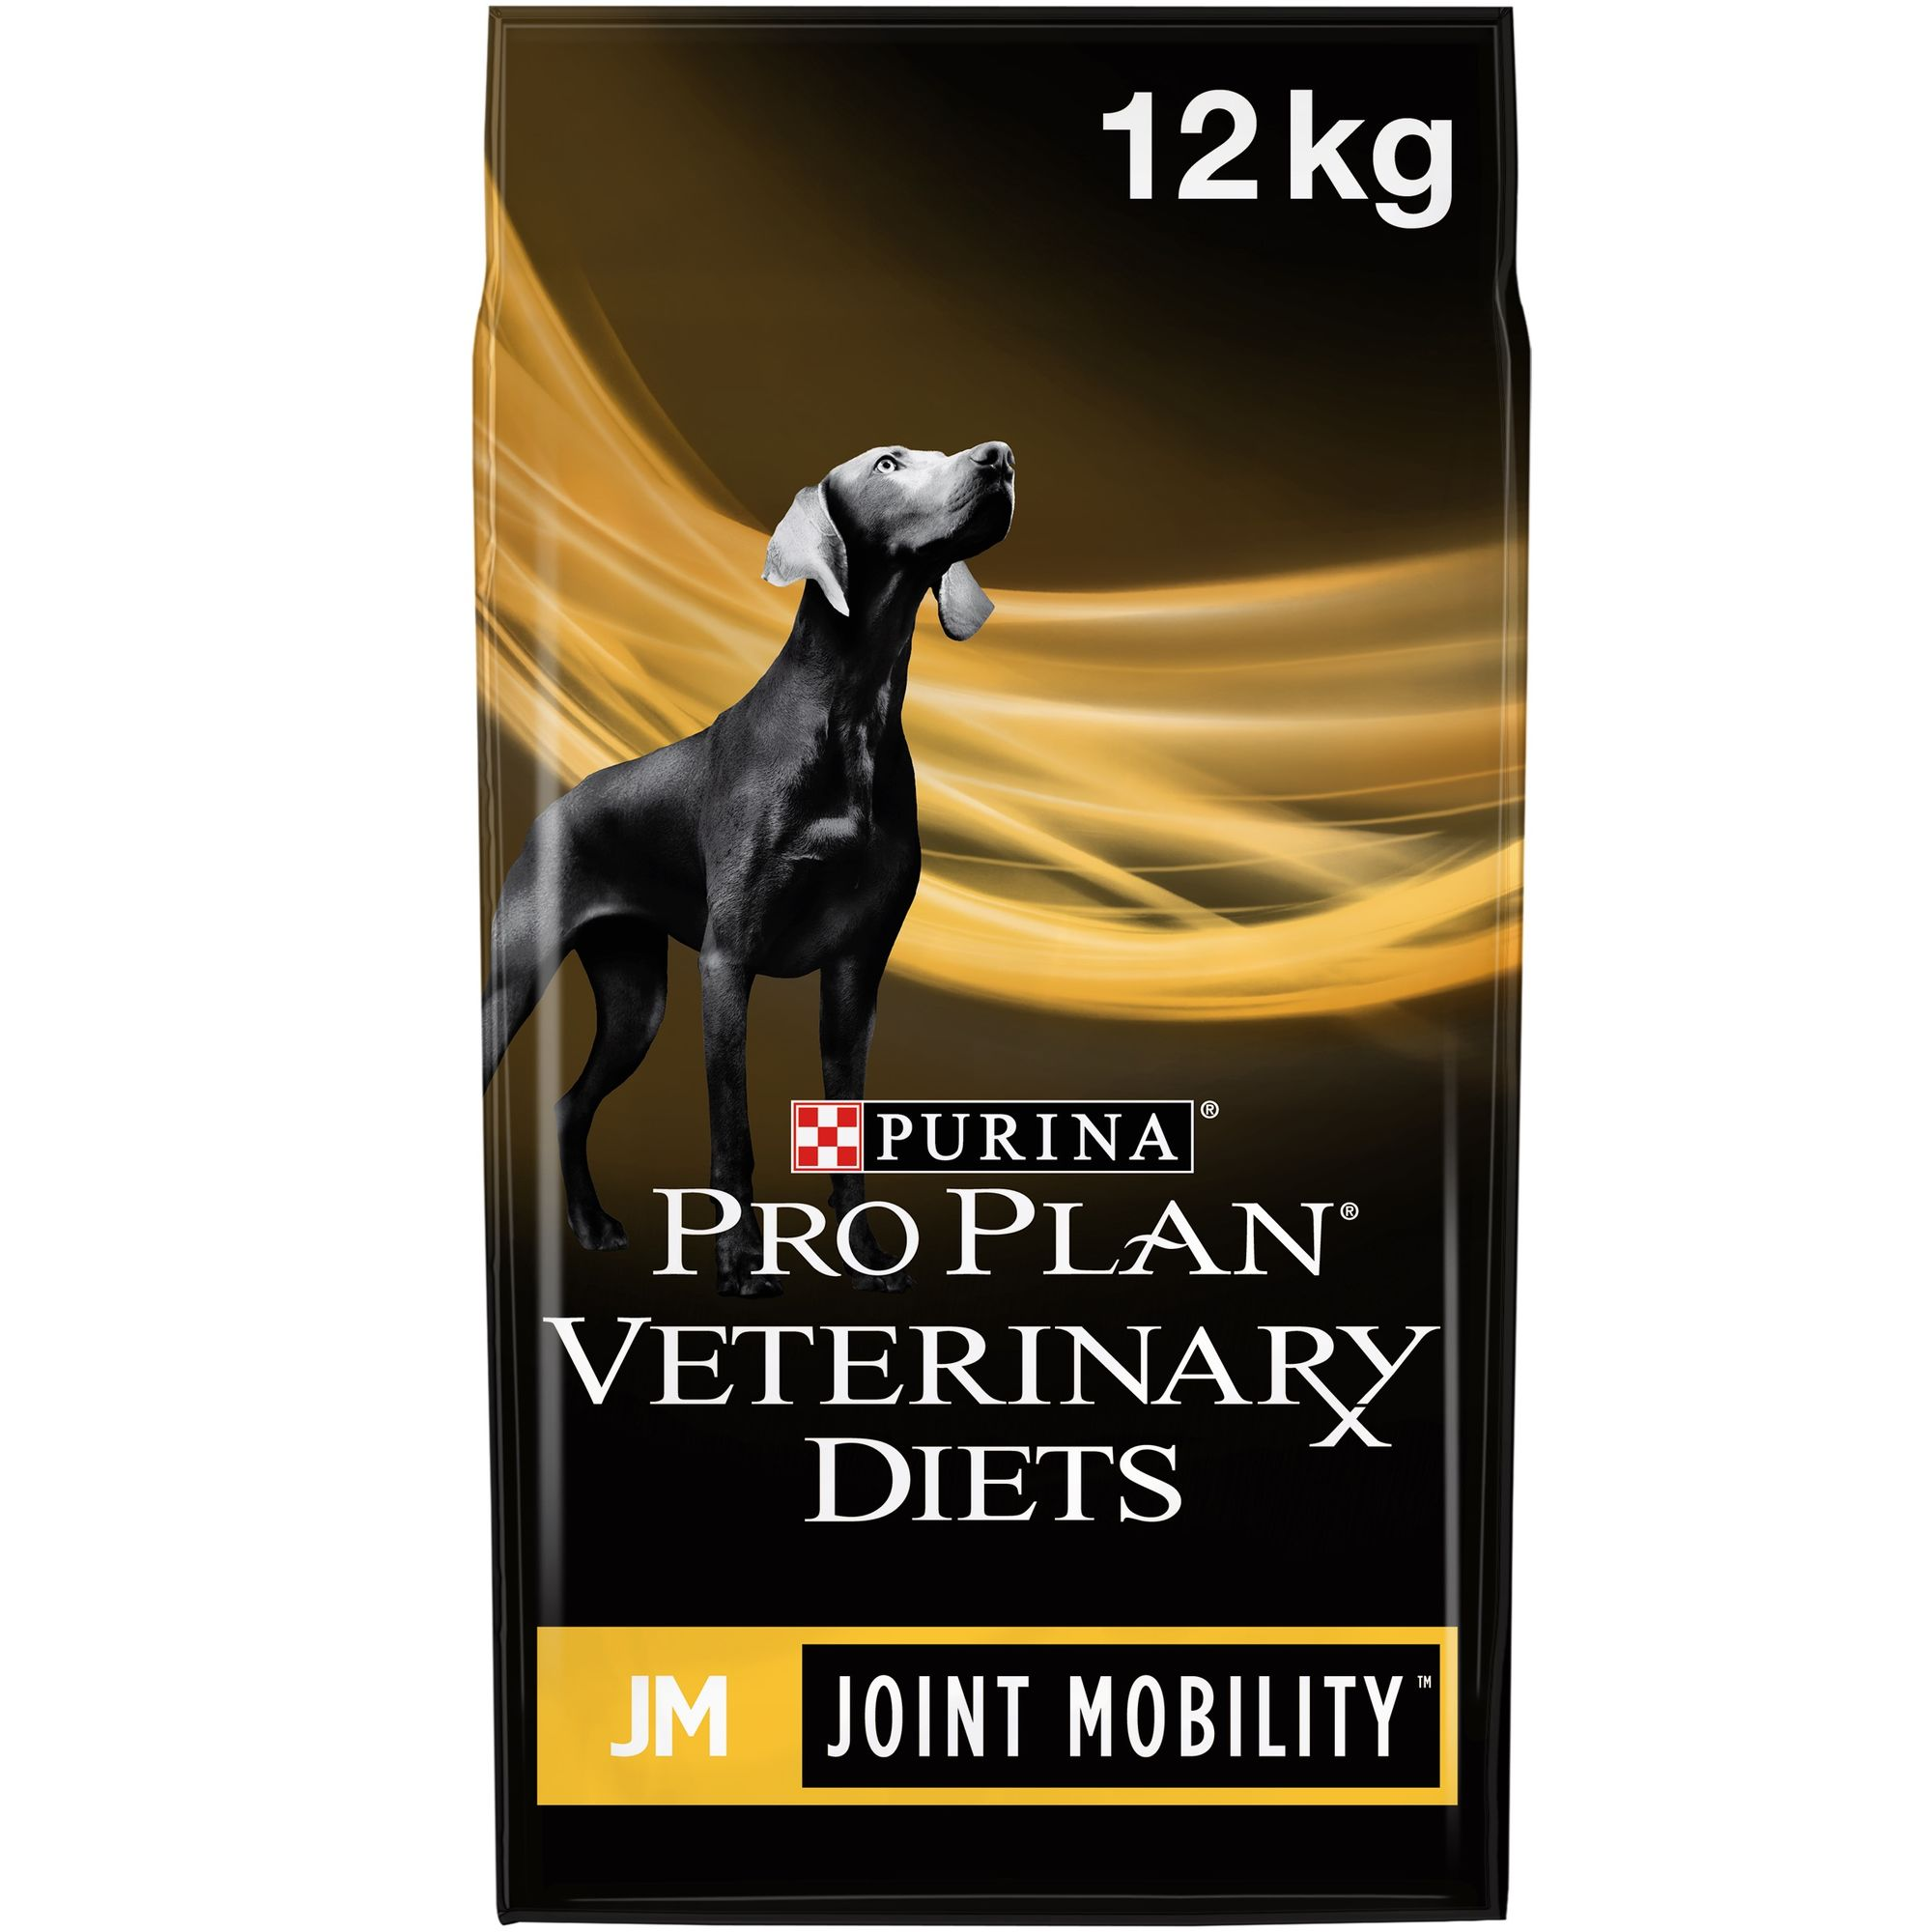 Purina Pro Plan Veterinary Diets Canine JM Joint Mobility Hondenvoer